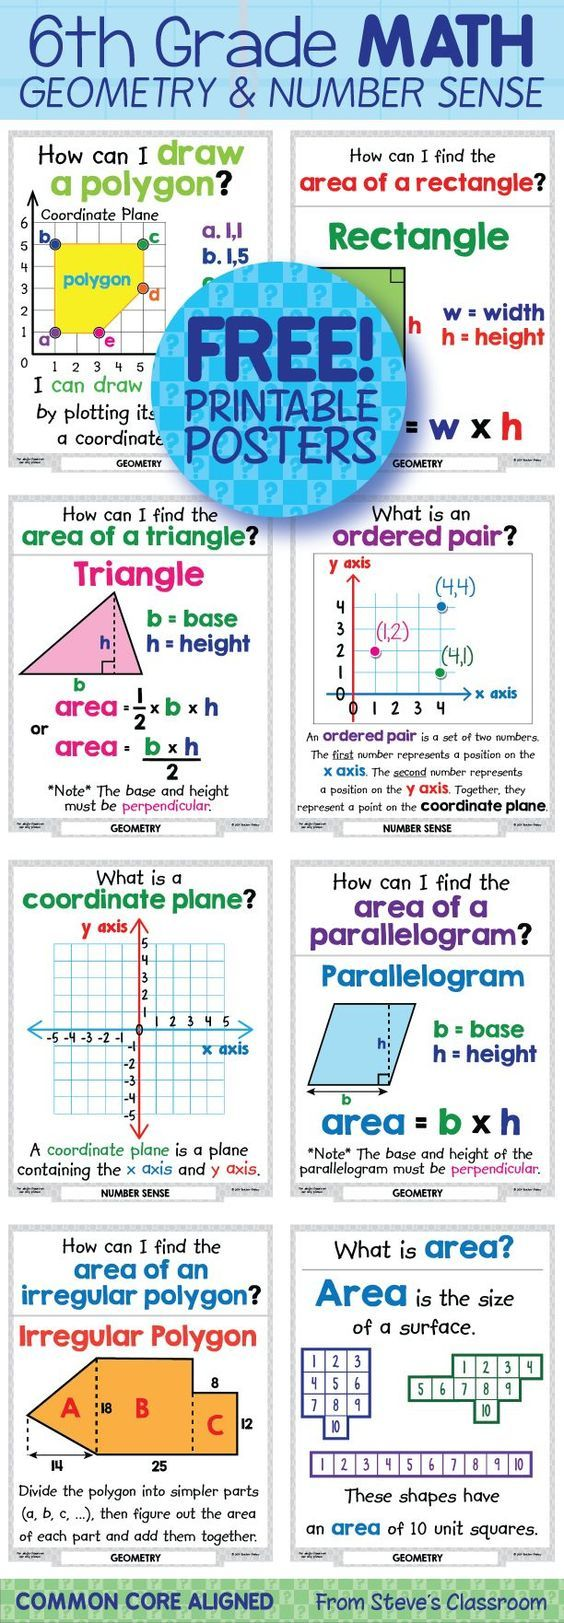 FREE Printable Math Posters: Area of a Triangle, Coordinate Plane ...